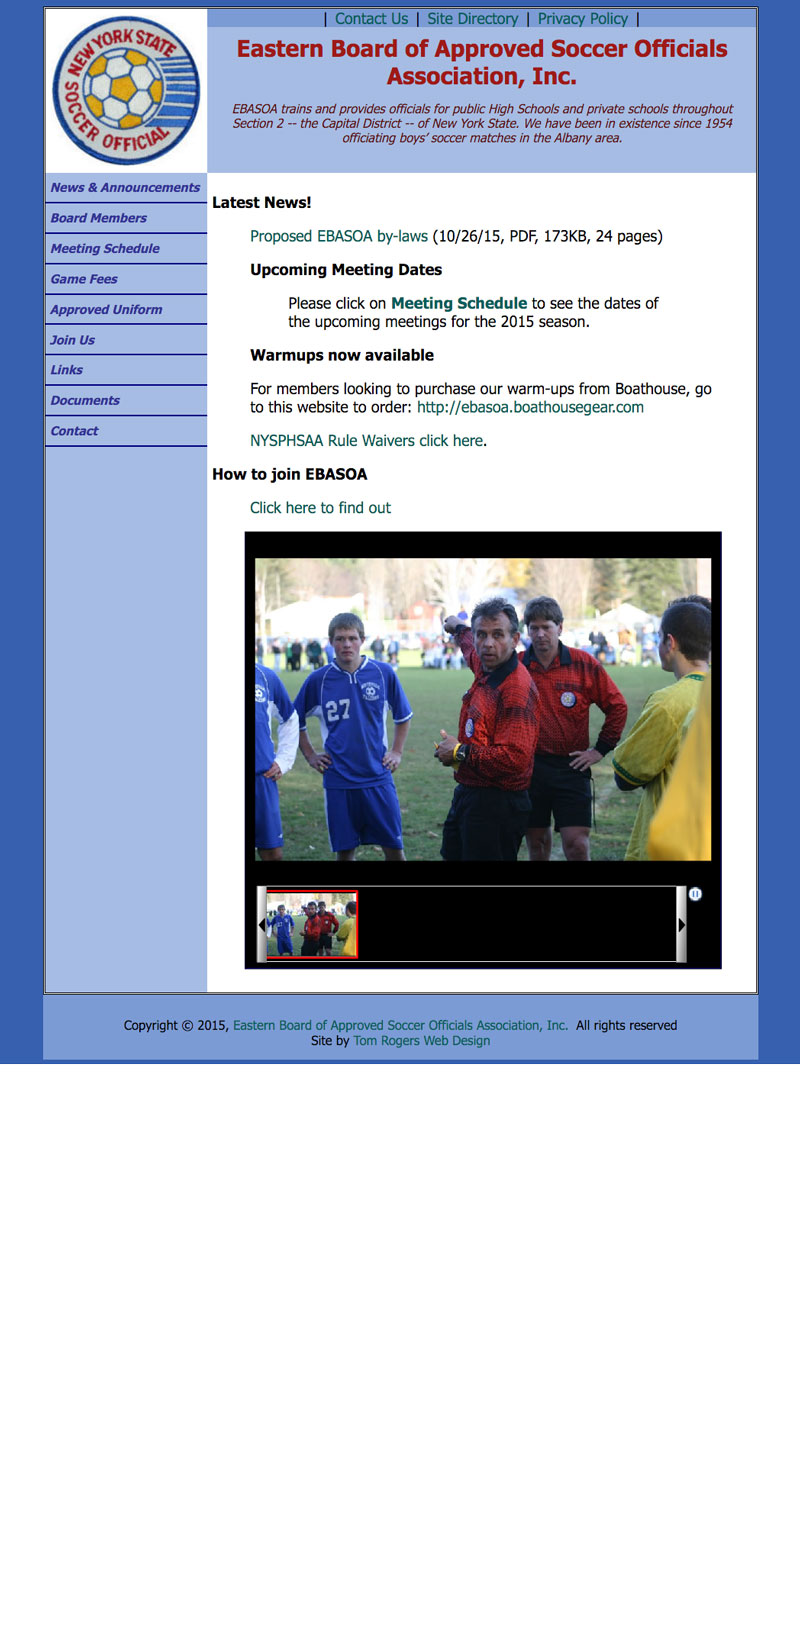 Eastern Board of Approved Soccer Officials Association, Inc.